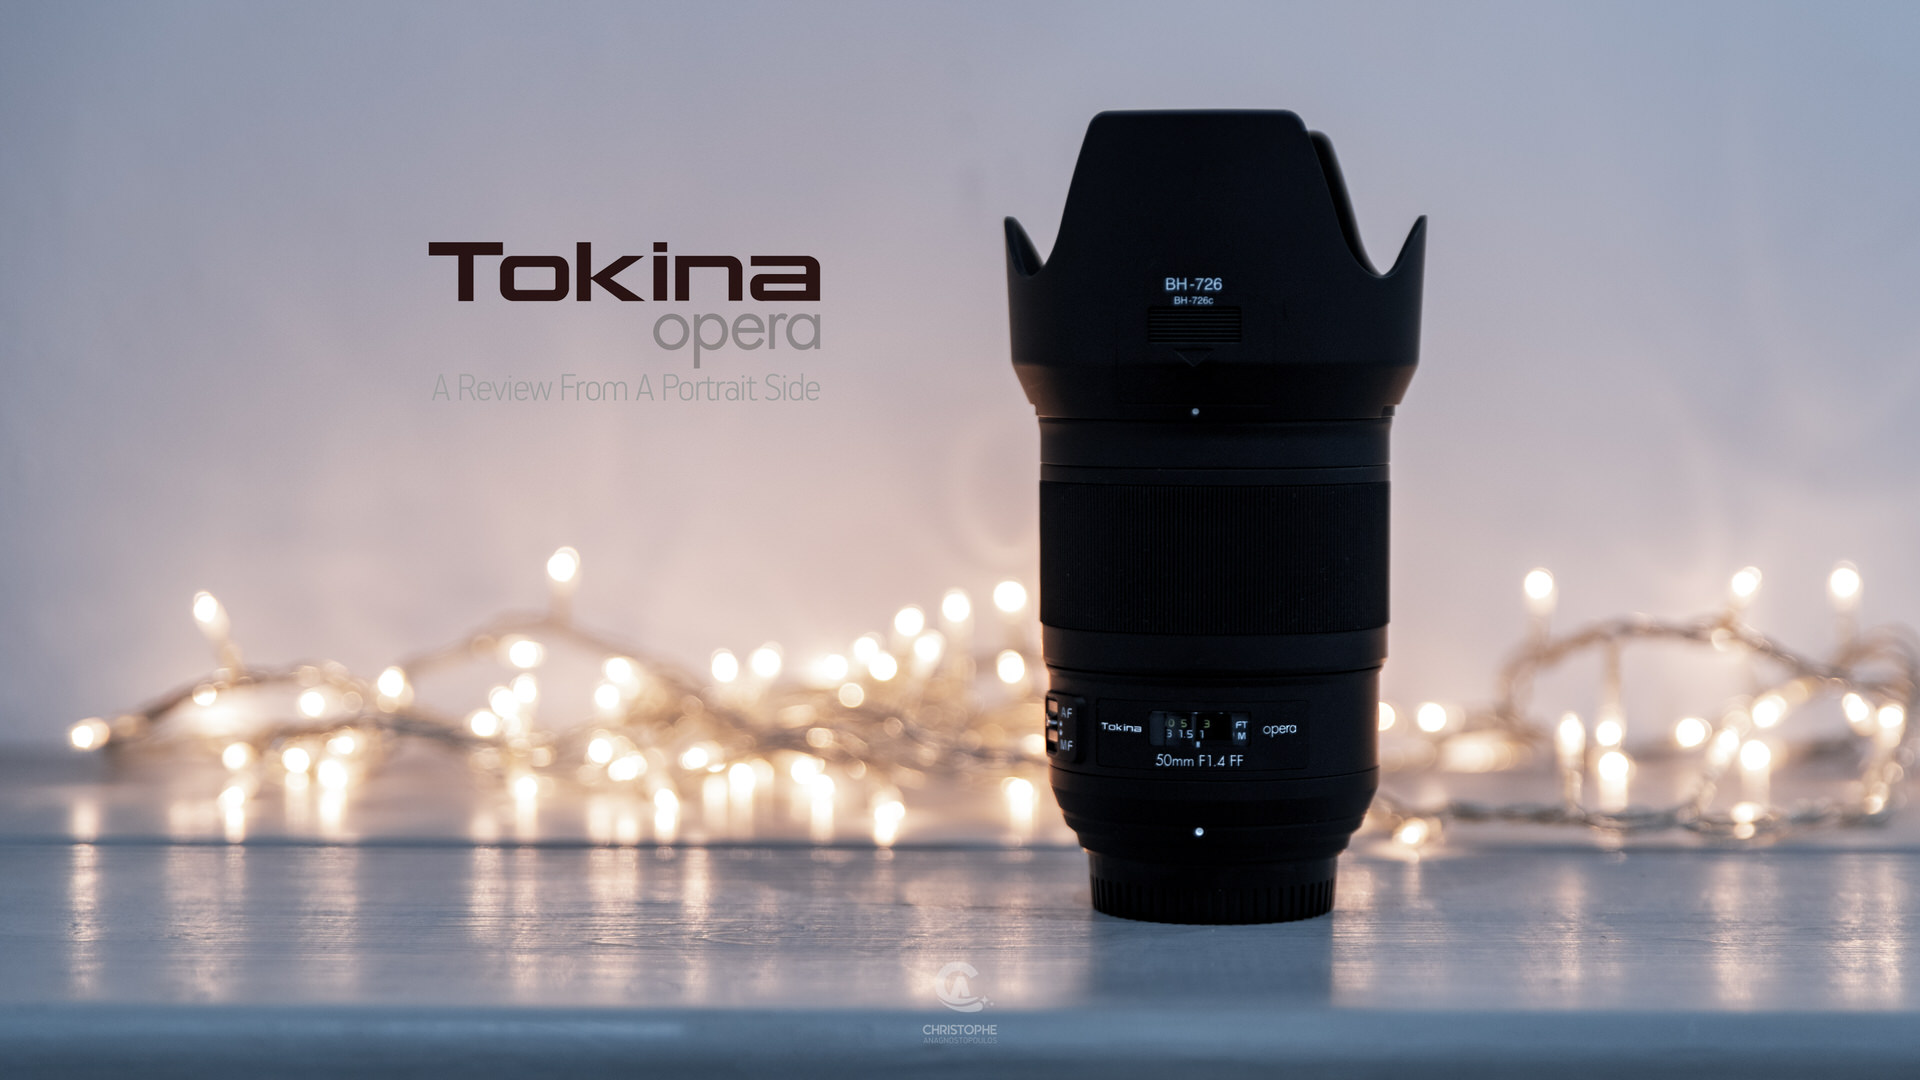 Tokina Opera 50mm - A Review from A Portrait Side